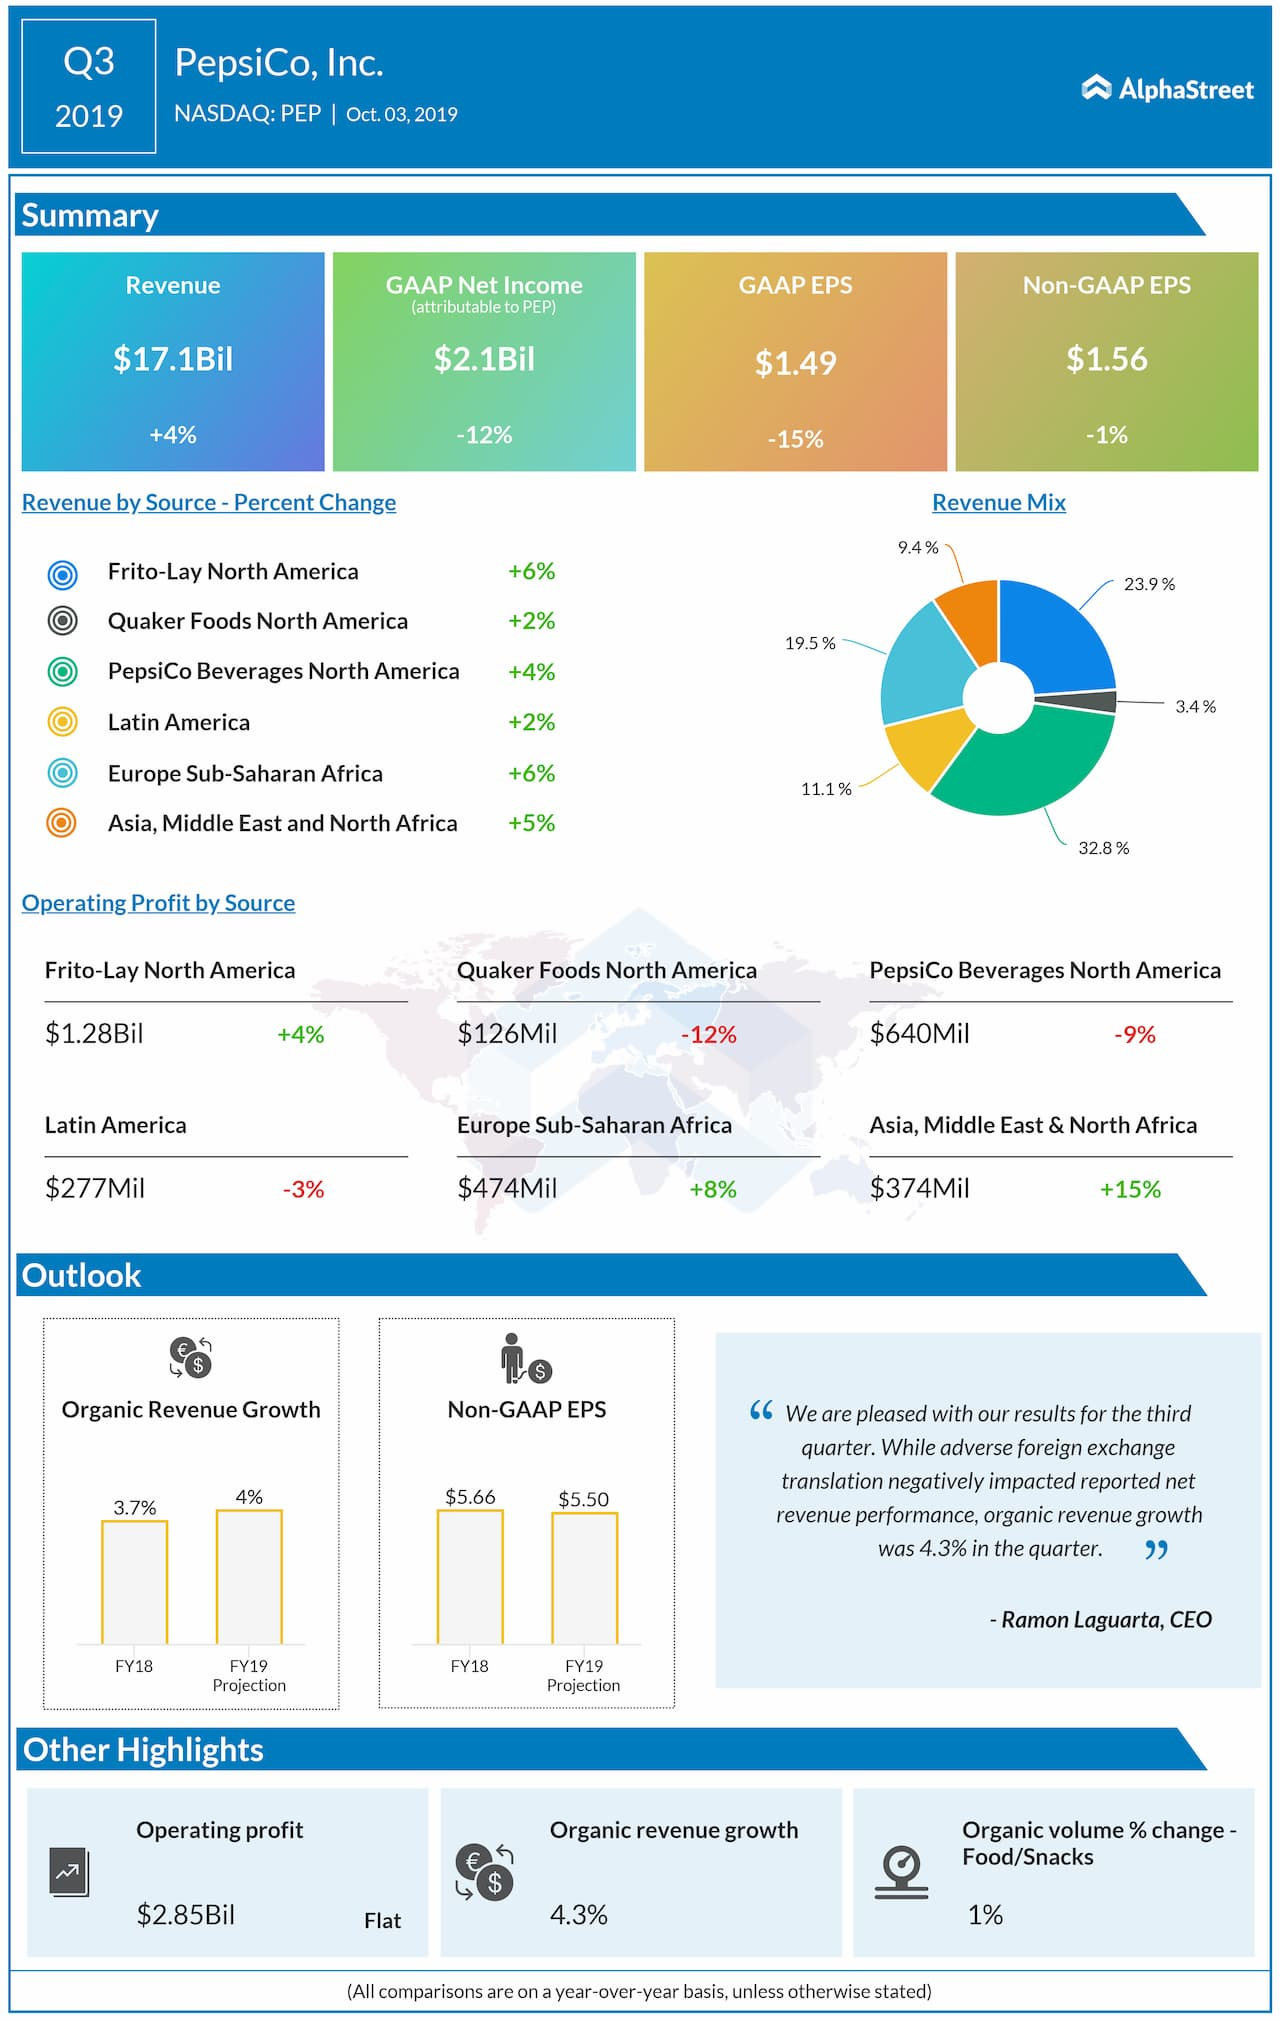 PepsiCo Q3 2019 earnings results infographic